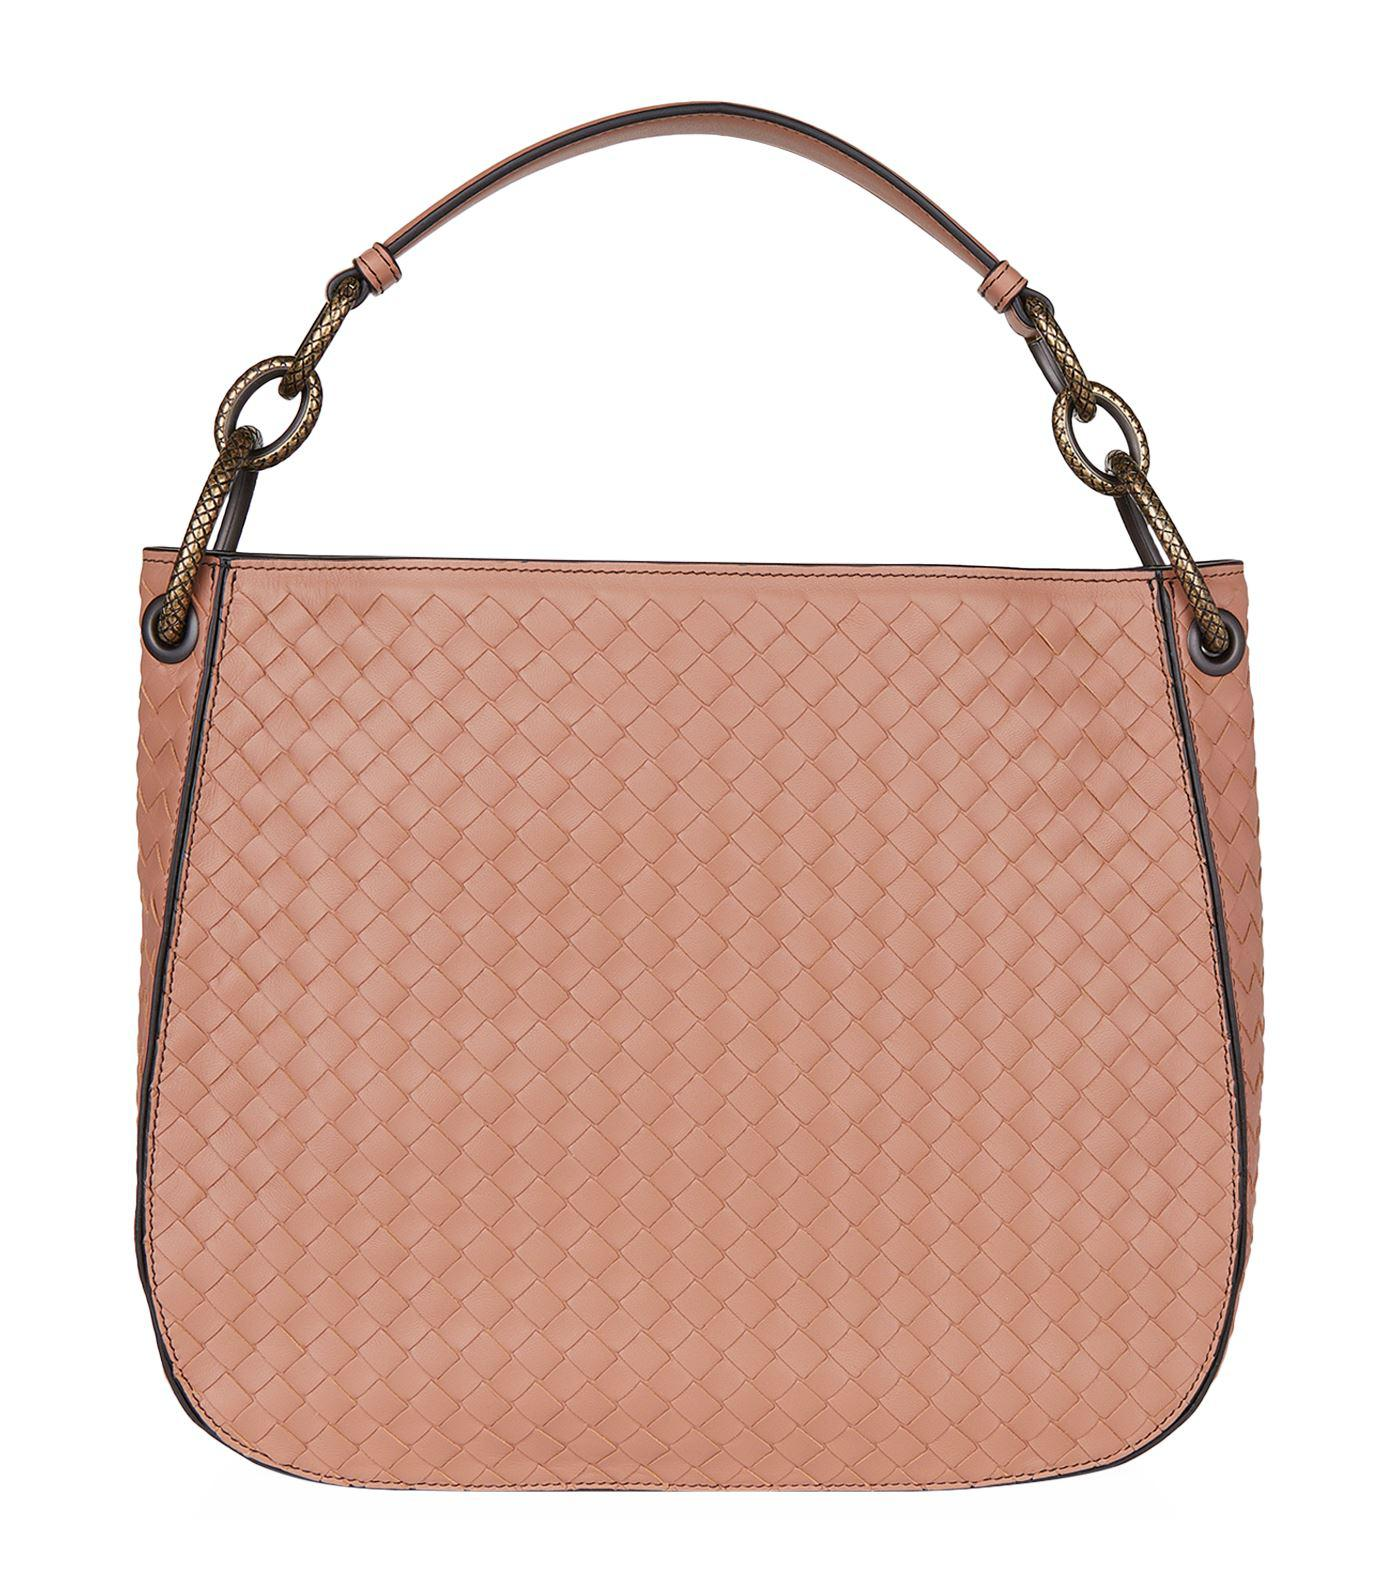 e62d26ed9230 Bottega Veneta Small Leather Intrecciato Loop Bag - Lyst